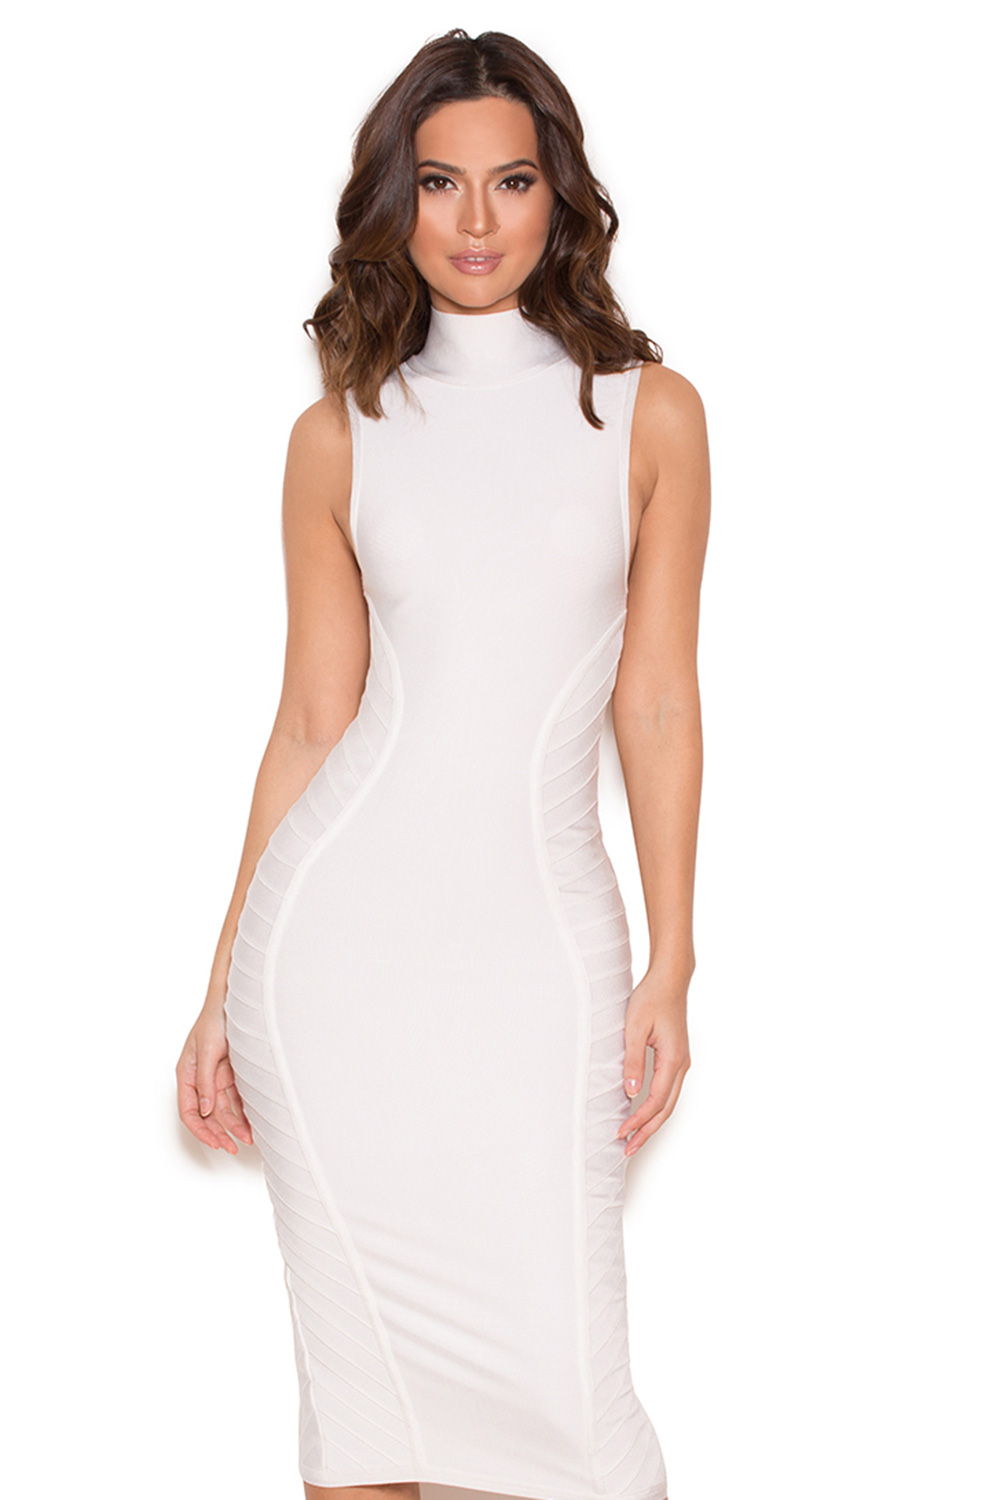 Shop for turtleneck dresses and other fashion products at ShapeShop. Browse our fashion selections and save today.